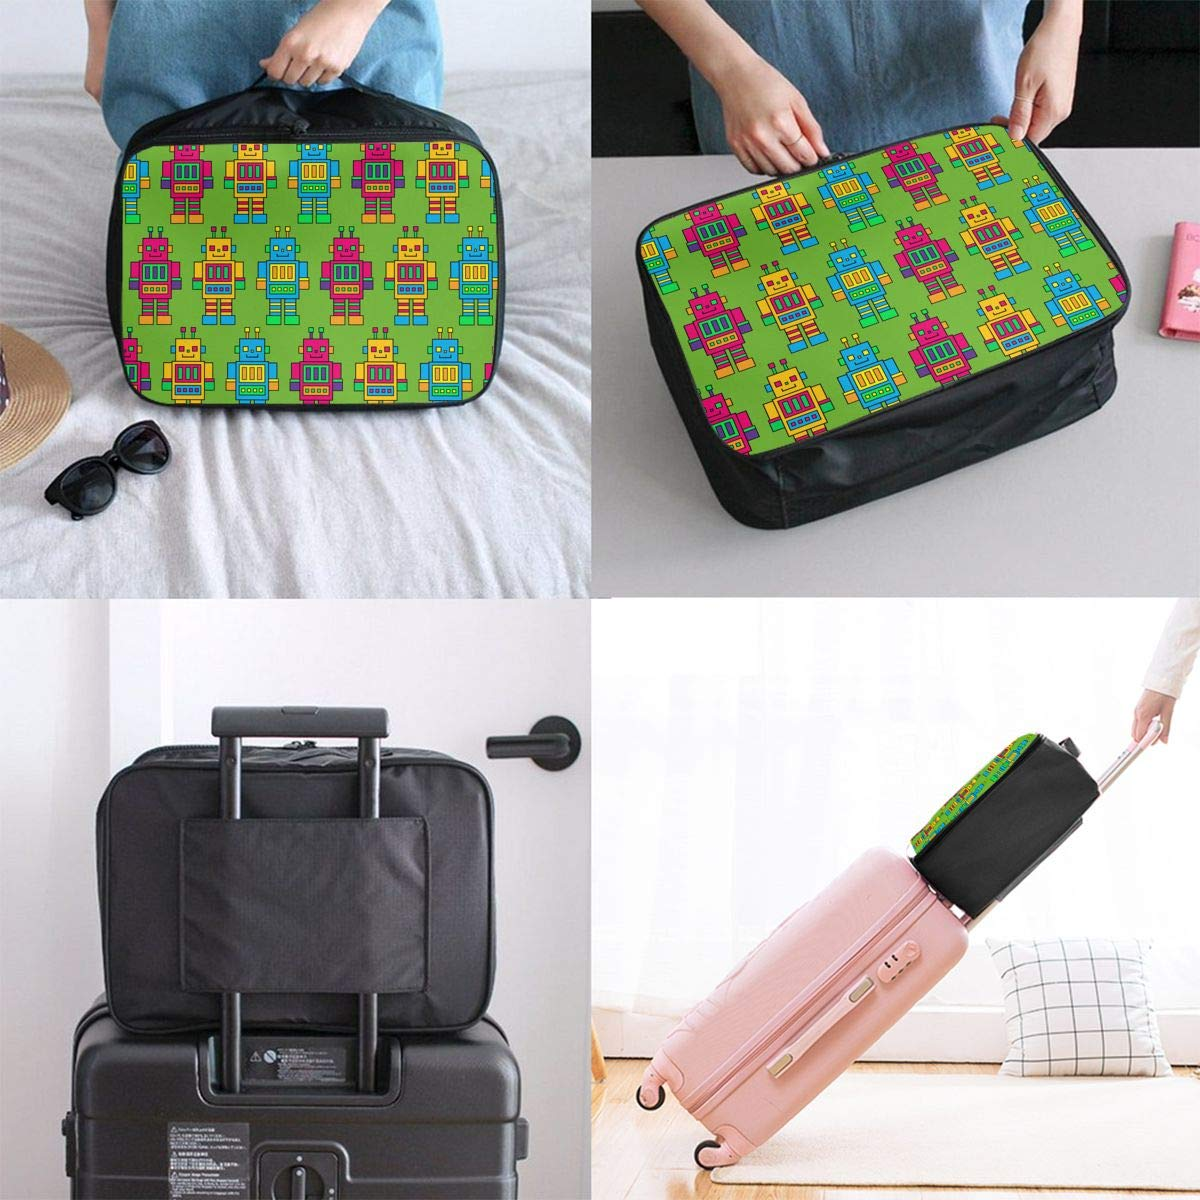 YueLJB Colorful Robot Pattern Lightweight Large Capacity Portable Luggage Bag Travel Duffel Bag Storage Carry Luggage Duffle Tote Bag